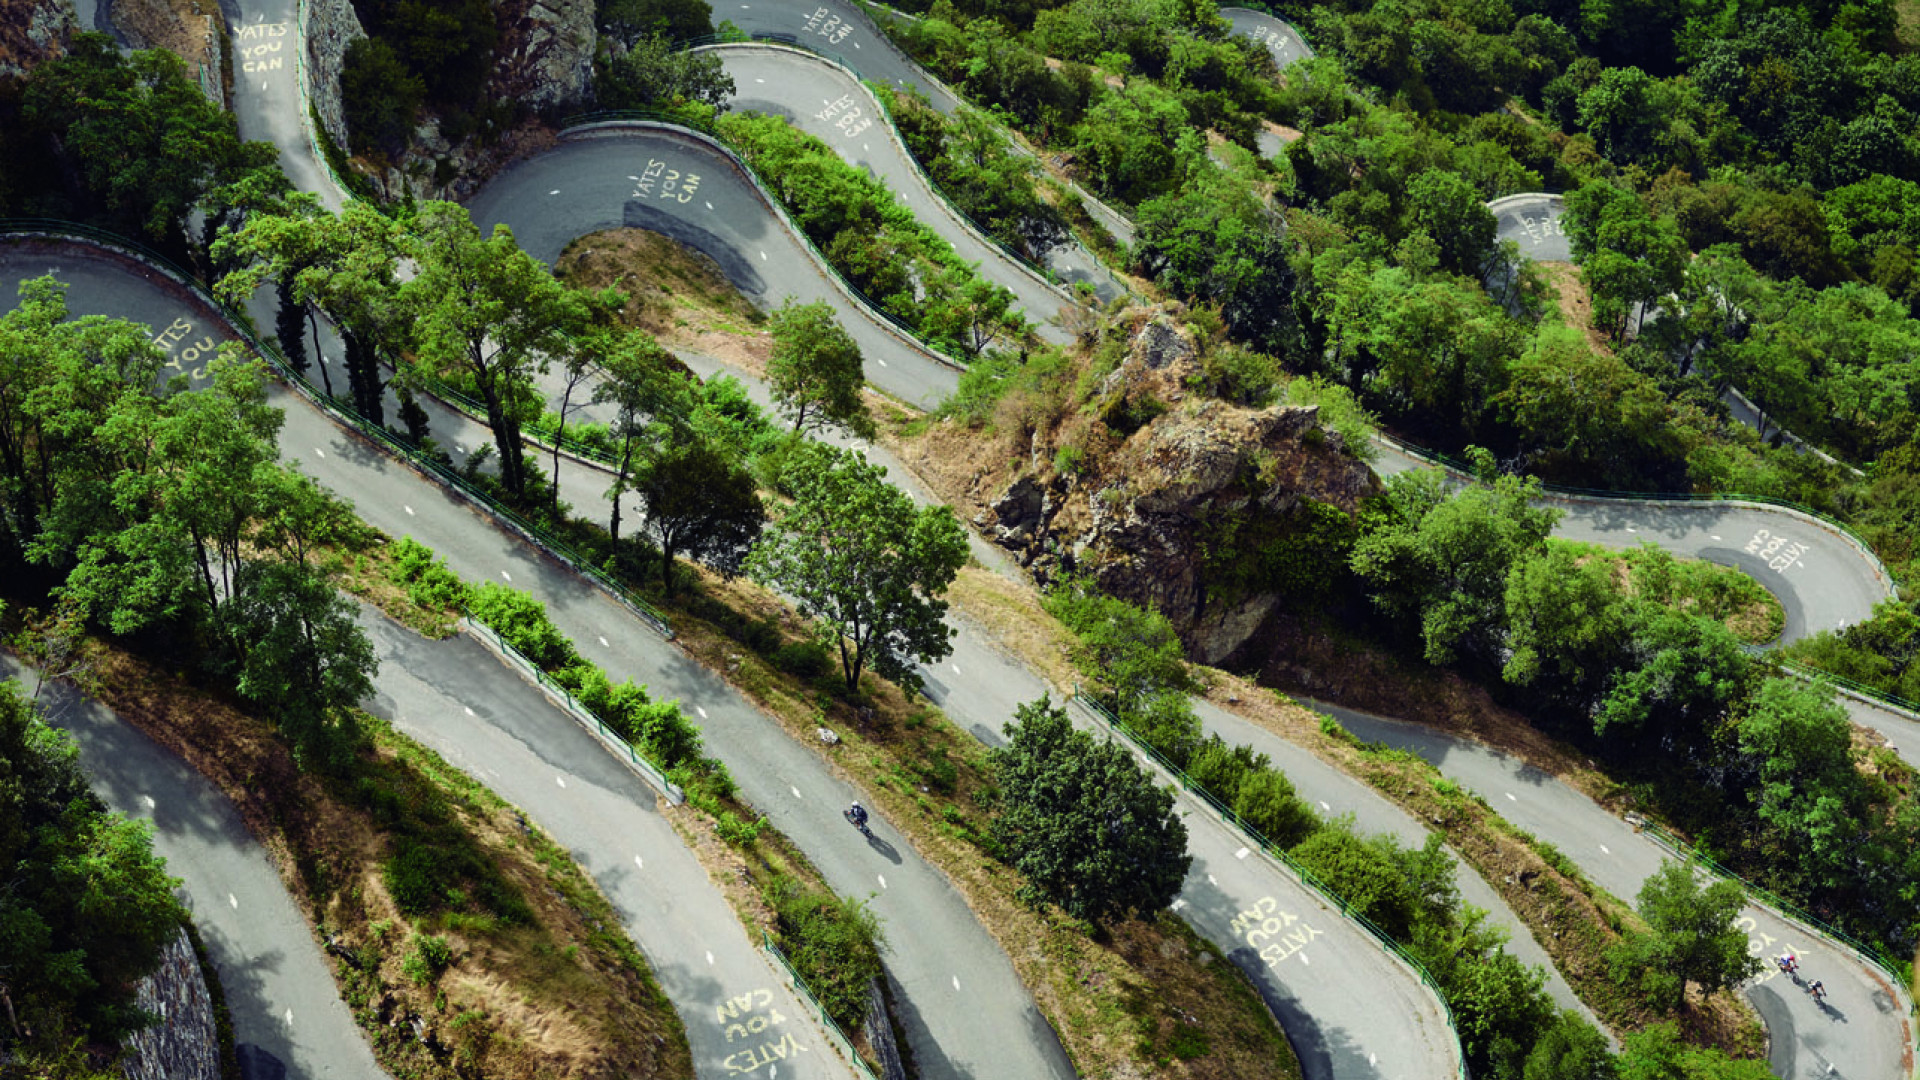 Hairpin bends on an alpine pass in France